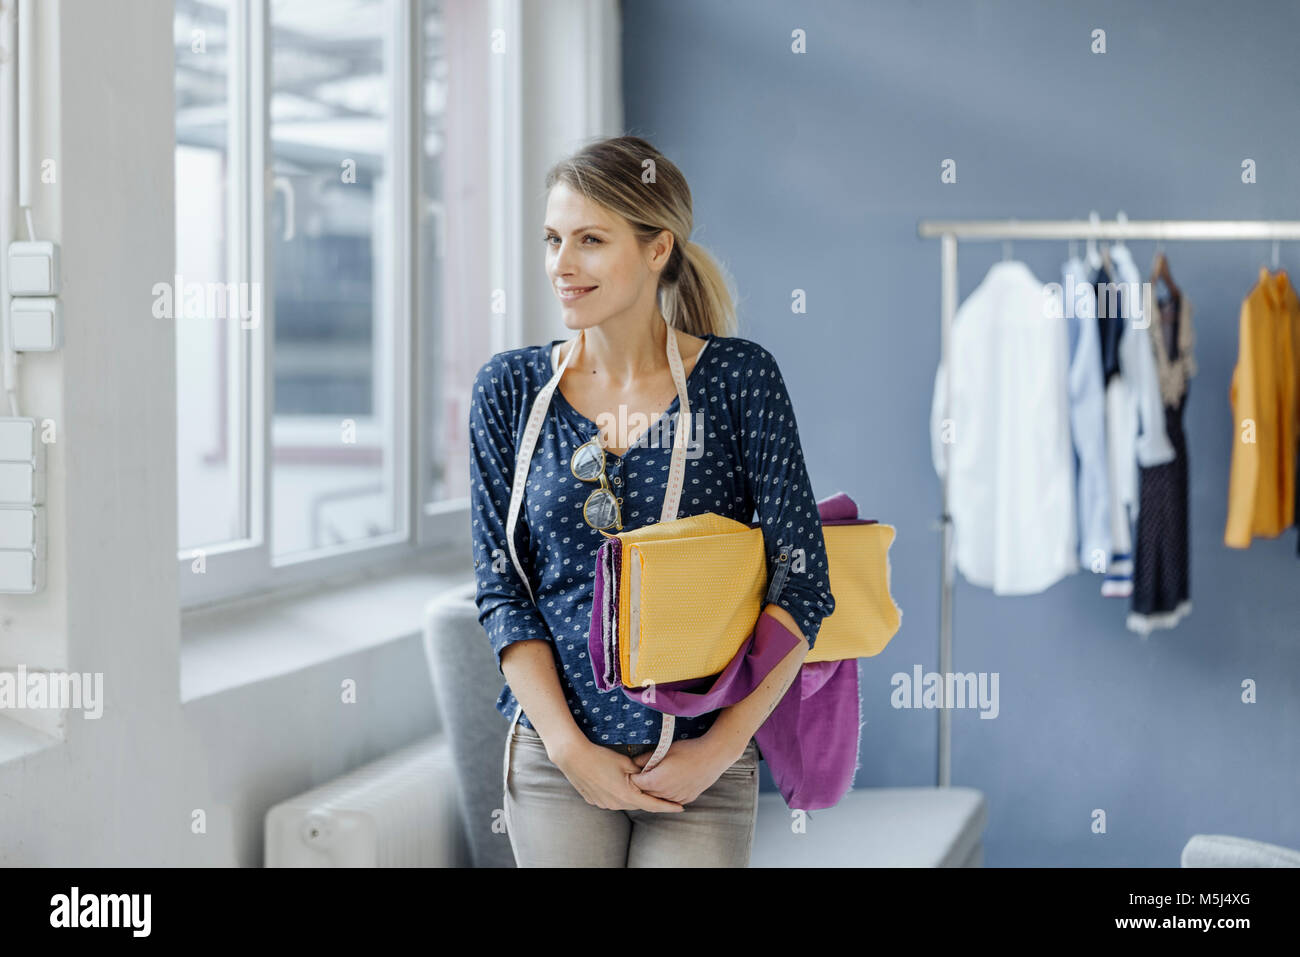 Portrait of smiling fashion designer standing in her studio - Stock Image